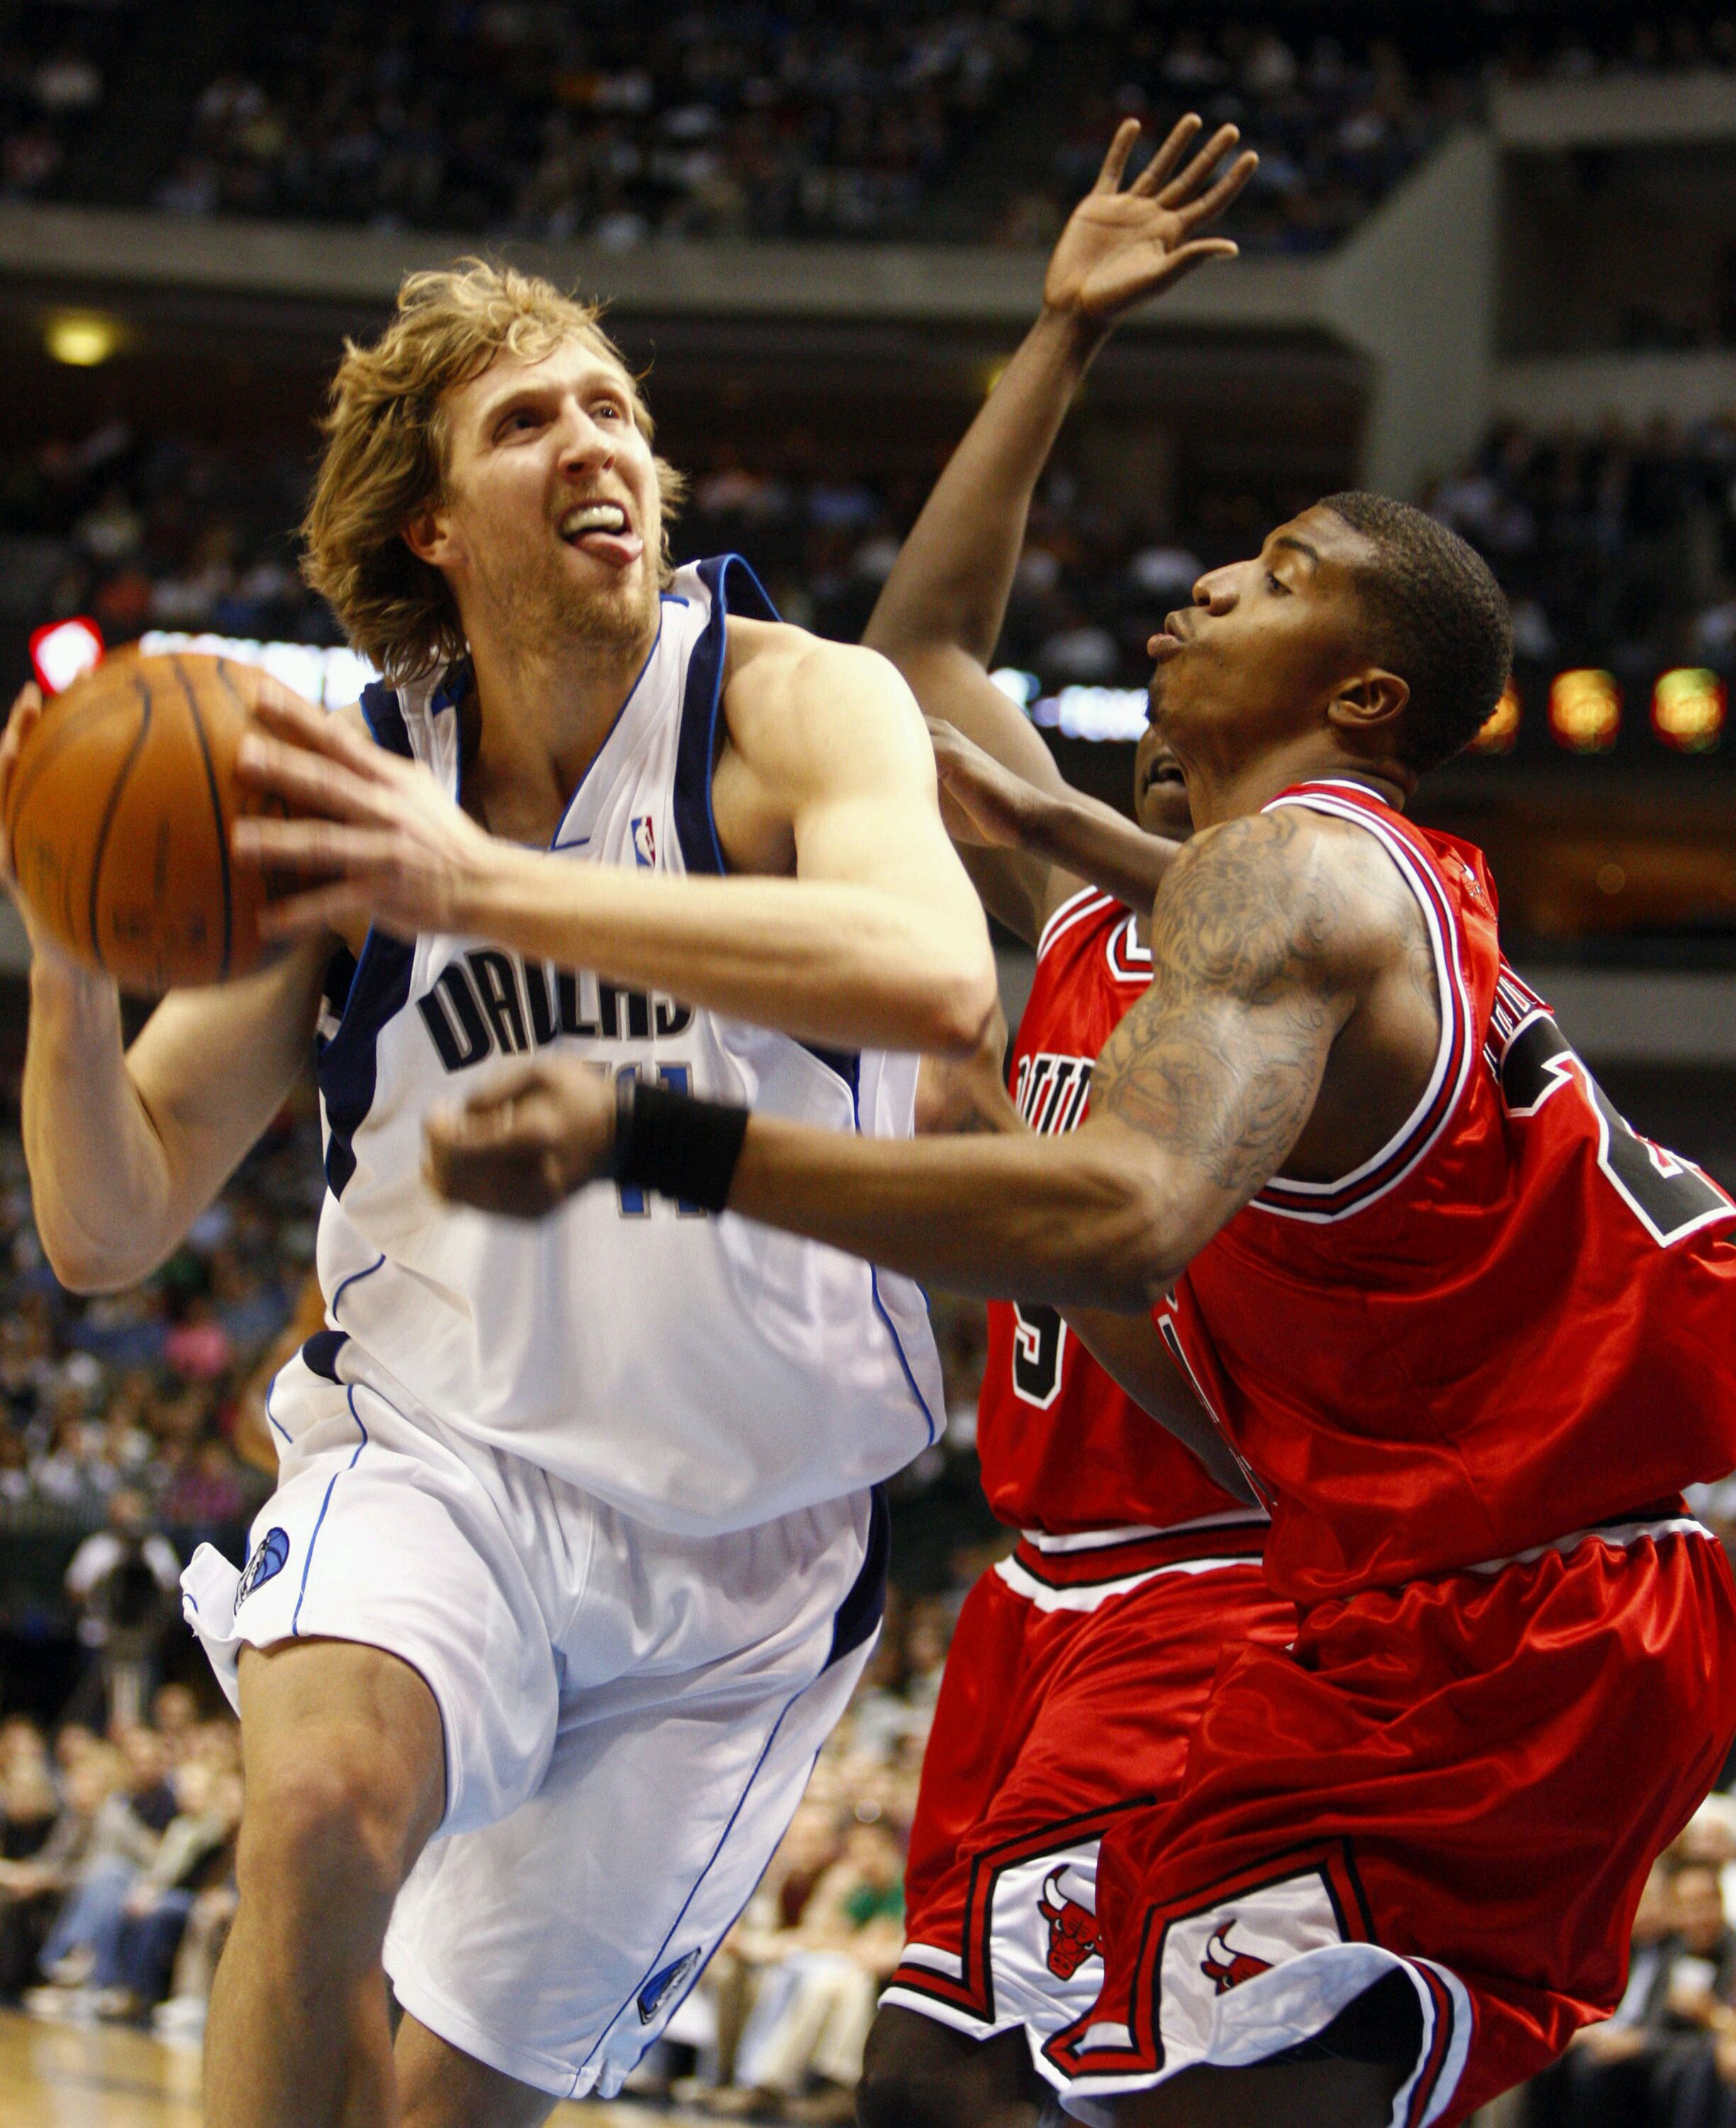 Dallas Mavericks forward Dirk Nowitzki, left, drives to the basket against Chicago Bulls Tyrus Thomas on Monday at the American Airlines Center in Dal...